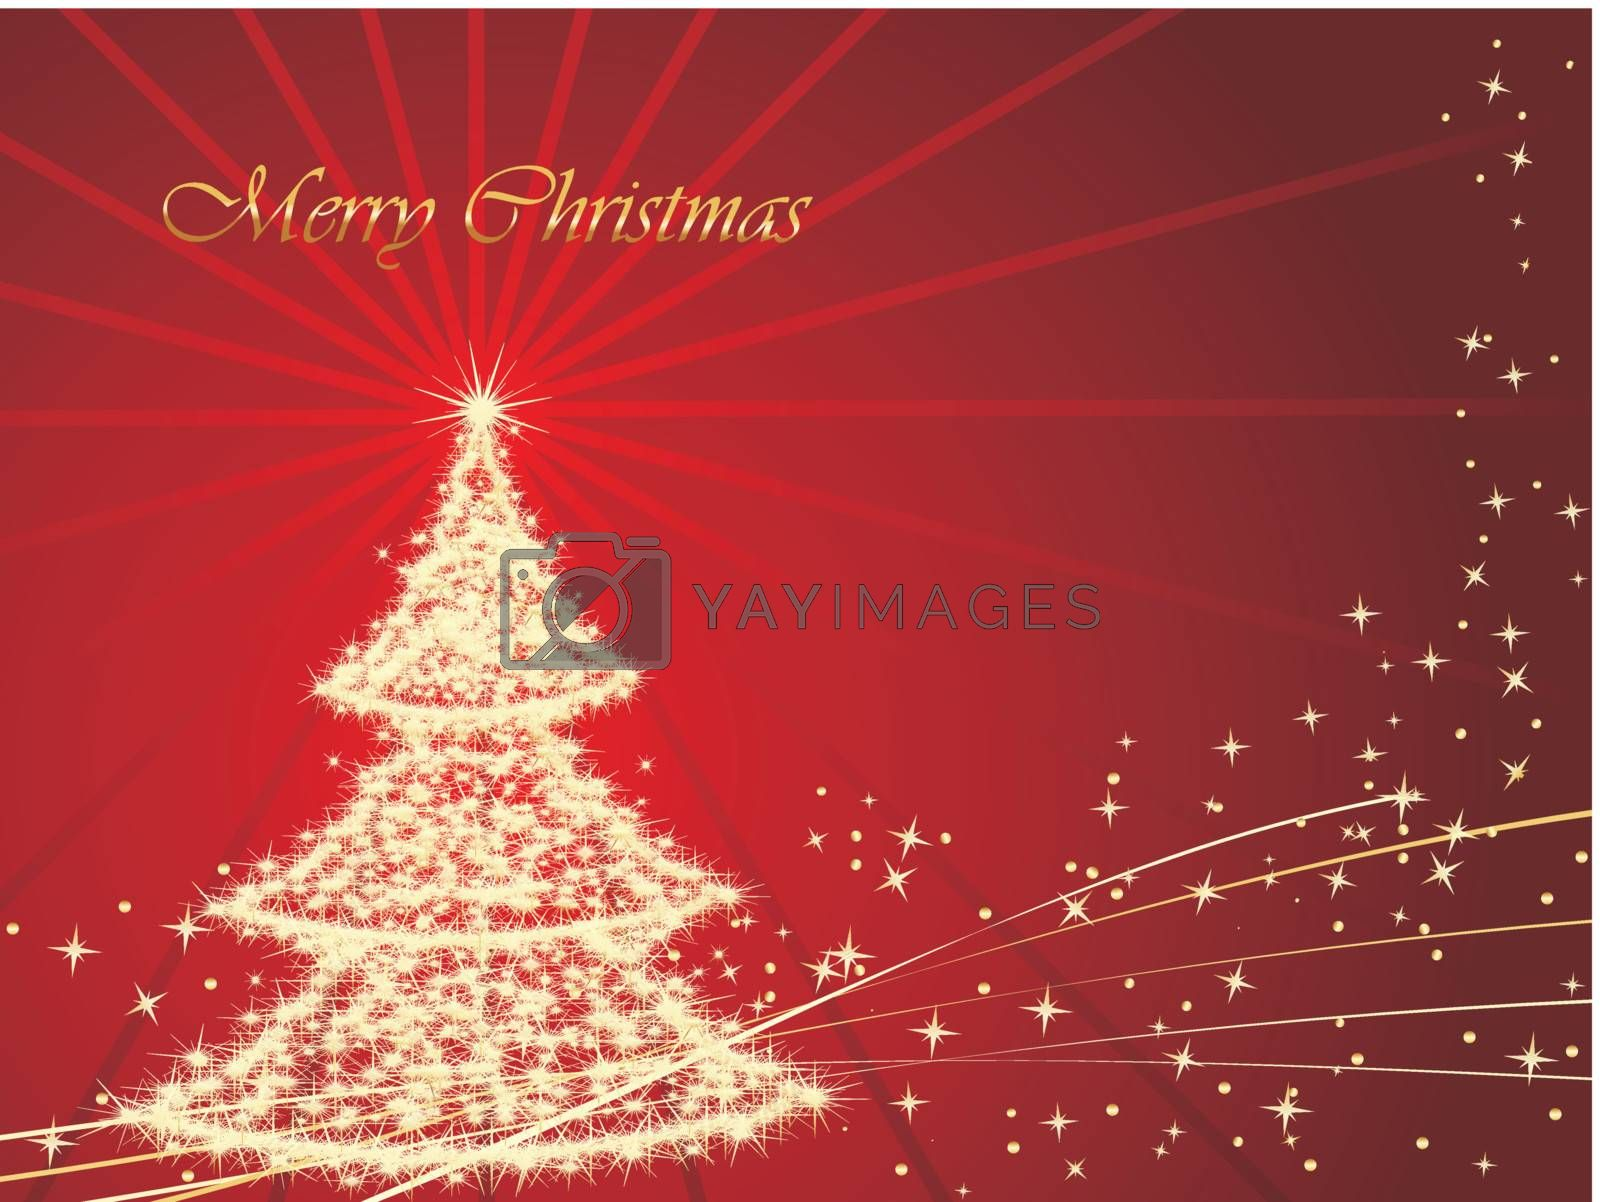 christmas stars background with tree, illustration